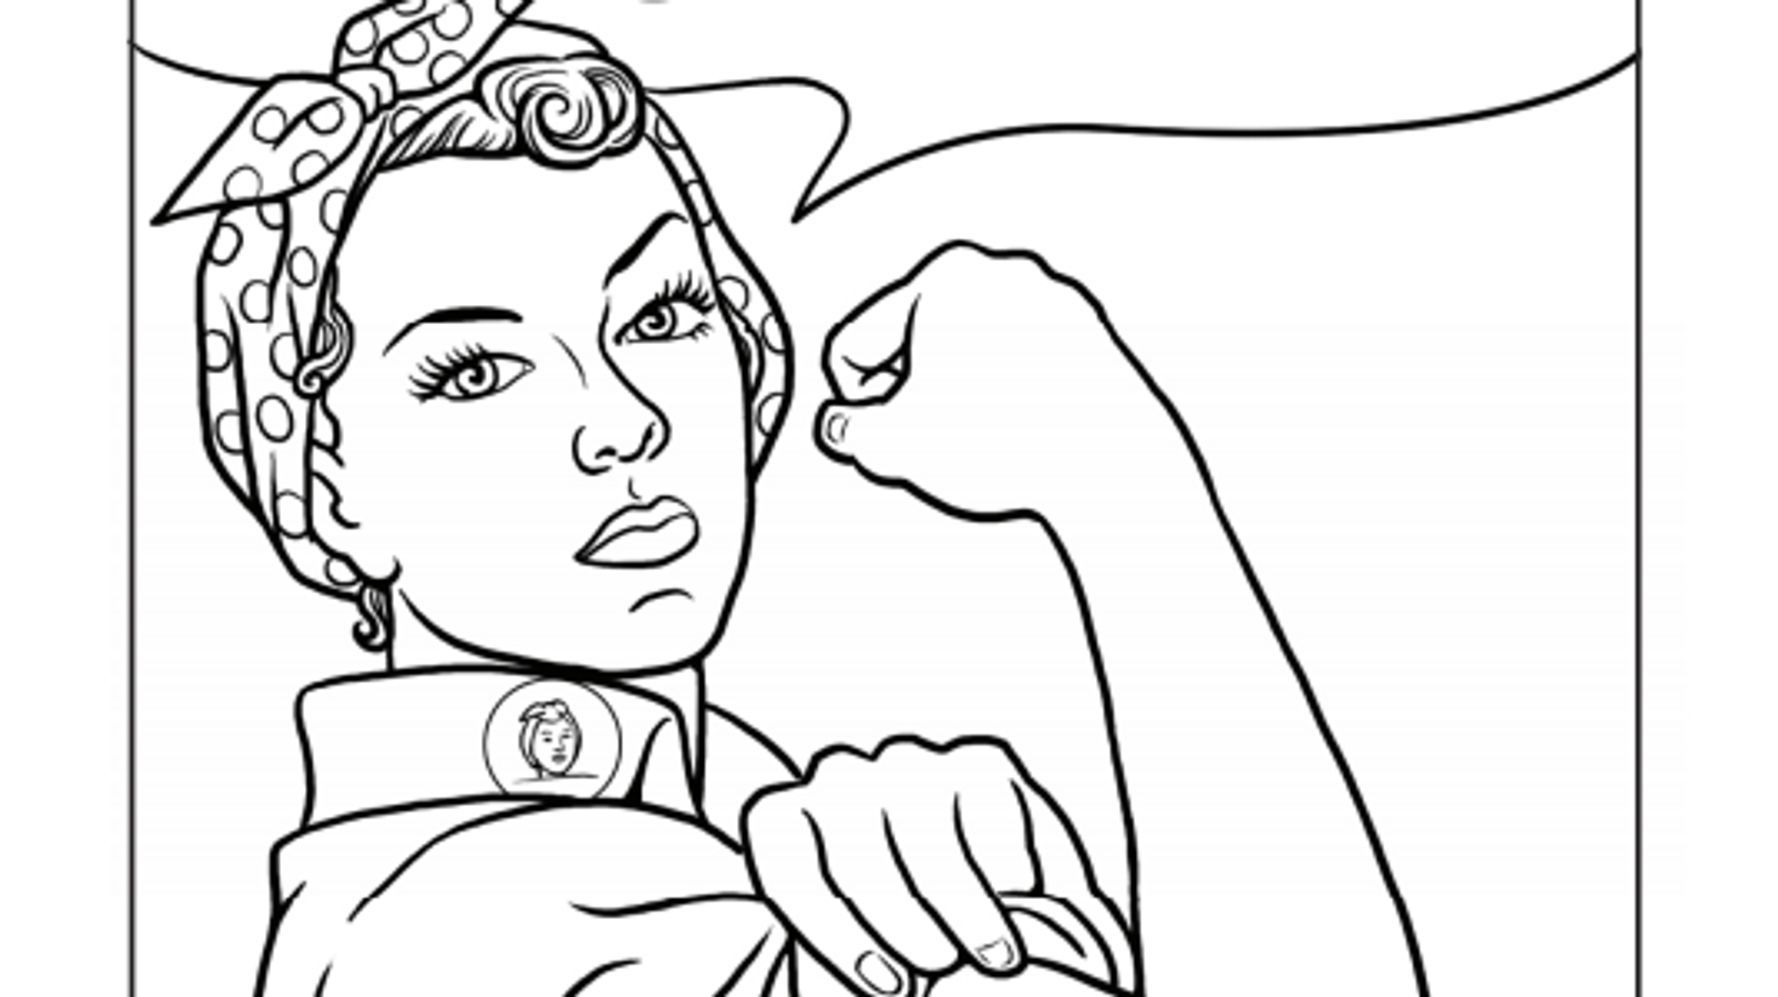 Pin By Milissa Fearing On Art In 2020 Coloring Sheets Coloring Pages Printable Coloring Sheets